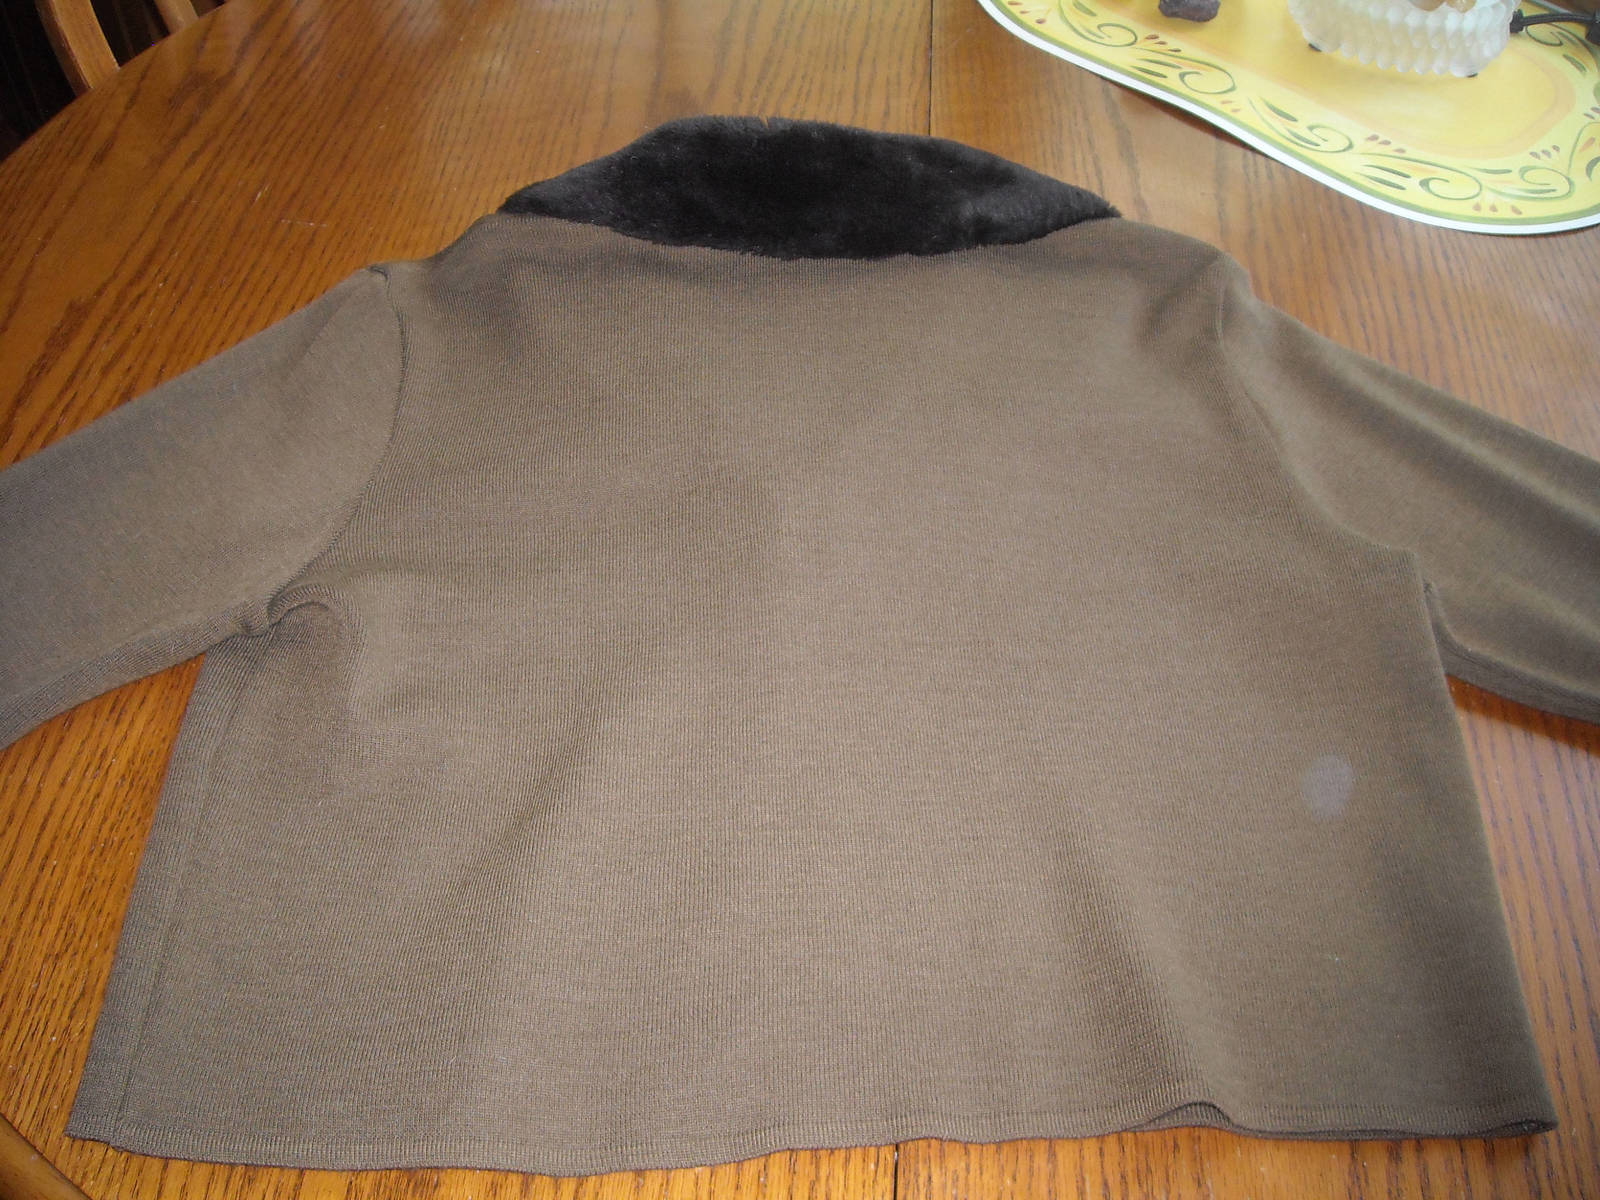 Women LENNIE Nina Leonard Cropped Sweater With Faux Fur Collar Brown (M) Acrylic image 4